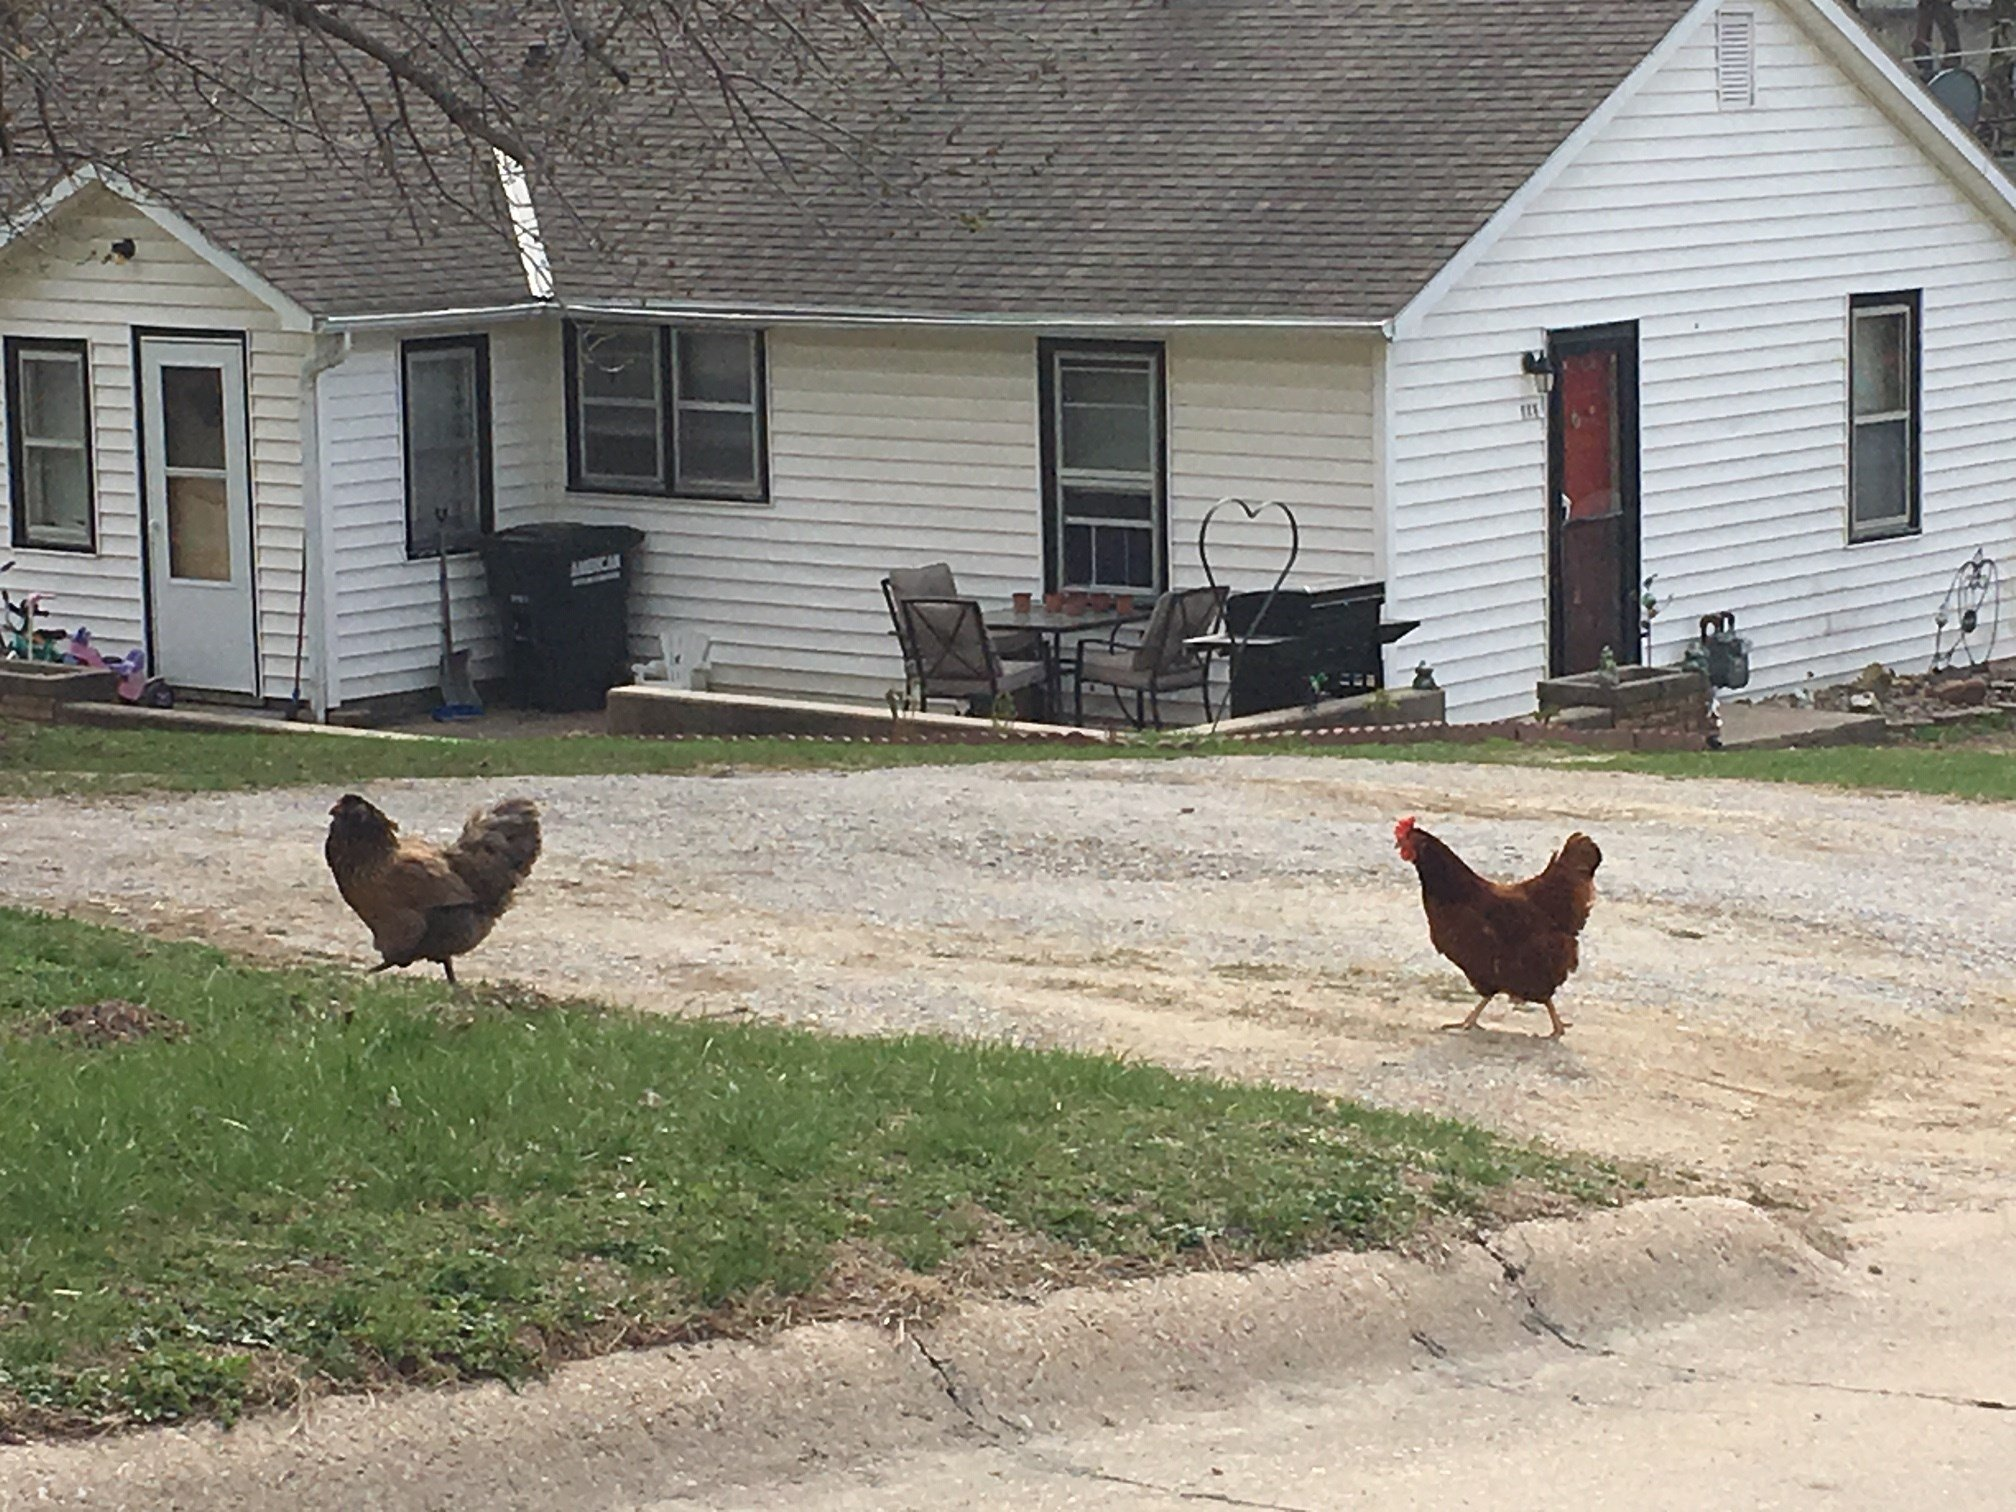 Chickens protested at Syracuse meeting